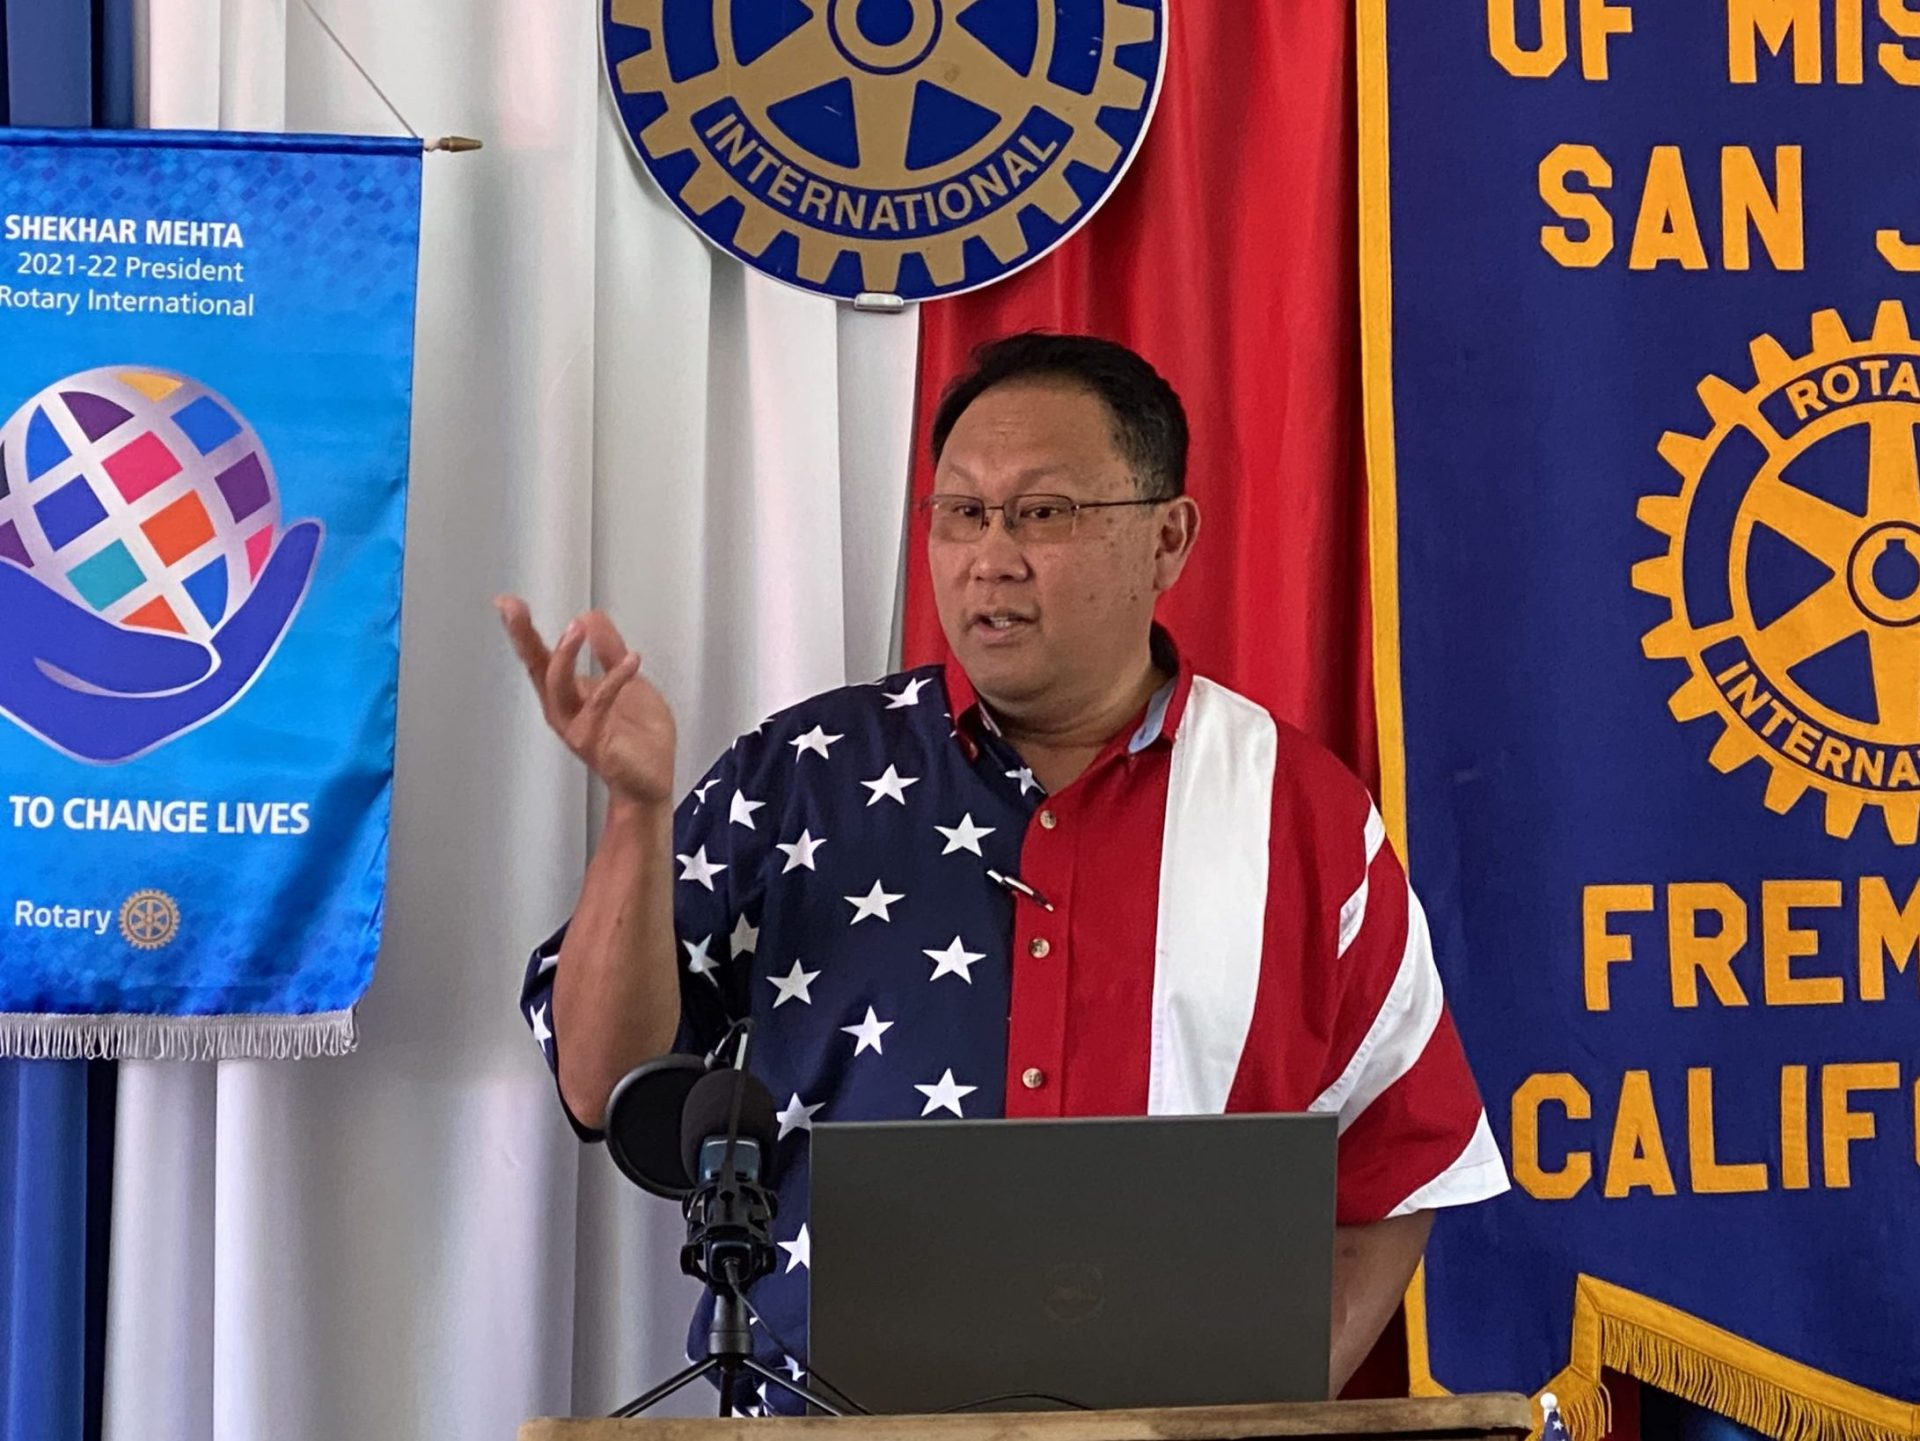 July 4th Meeting 2021 - President Mike